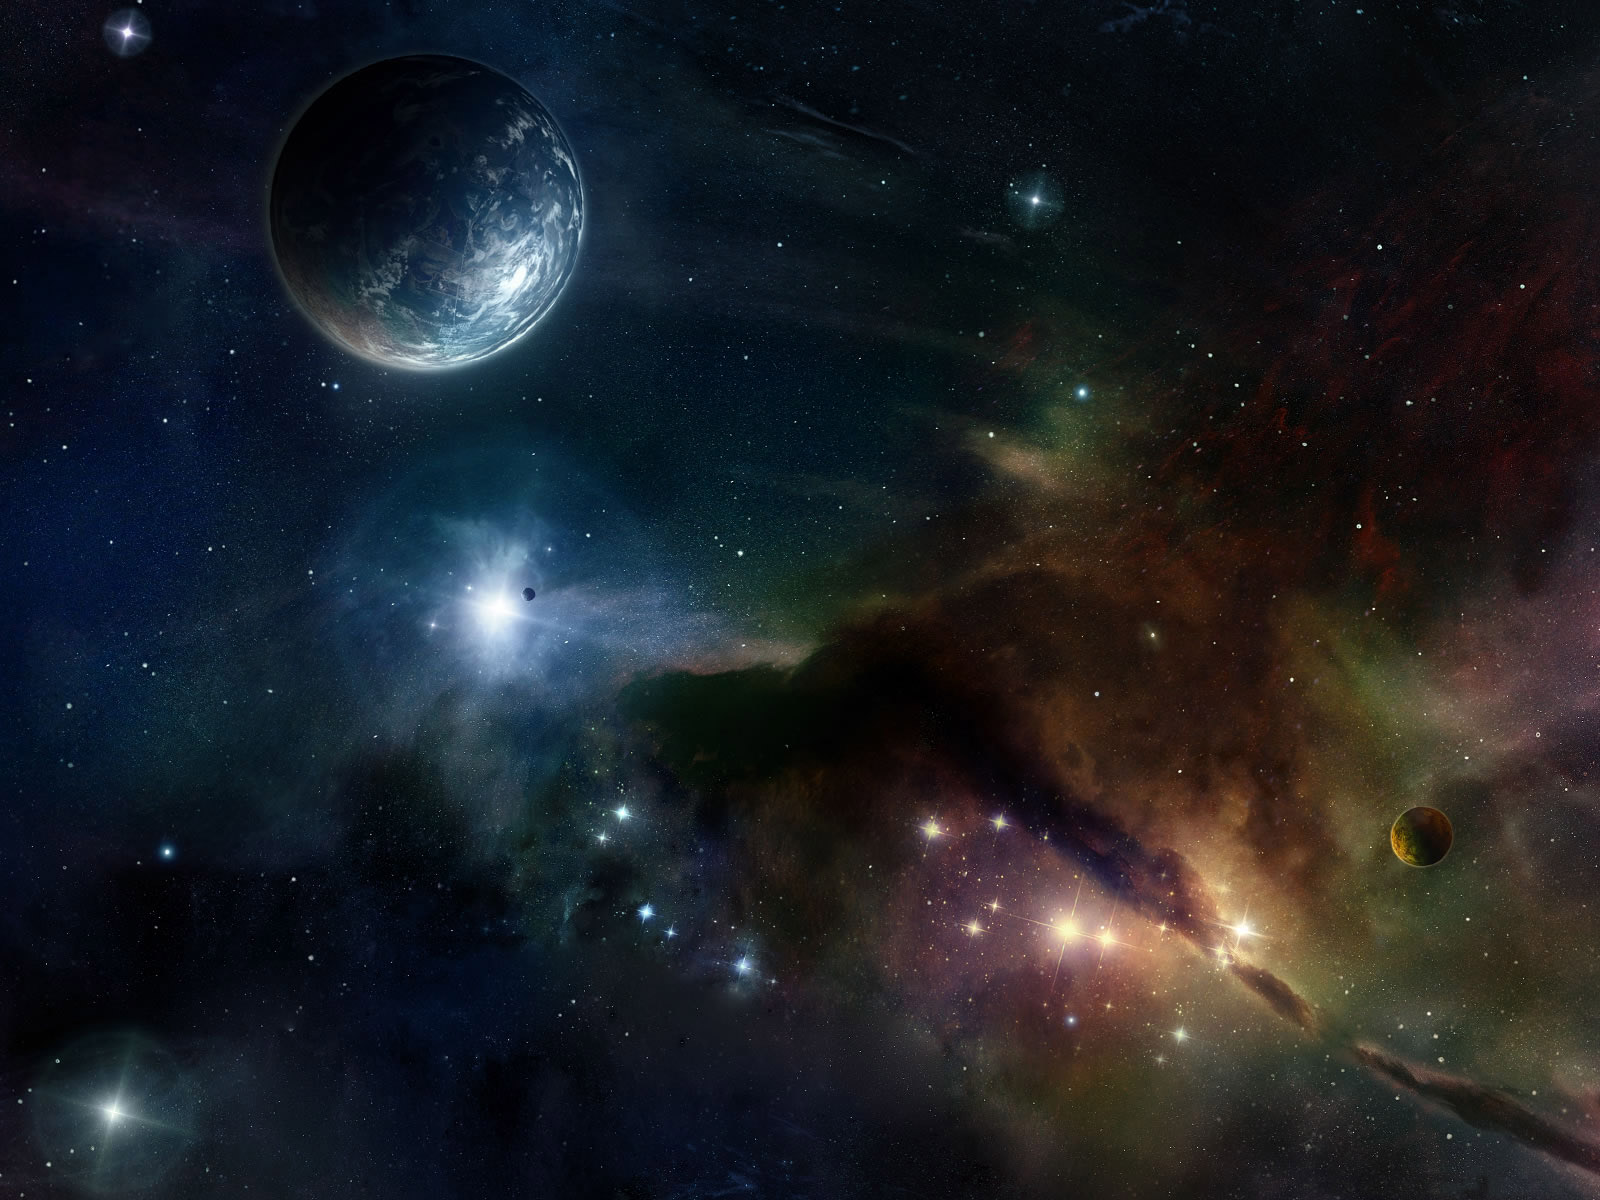 High Quality Space Wallpapers 1600x1200